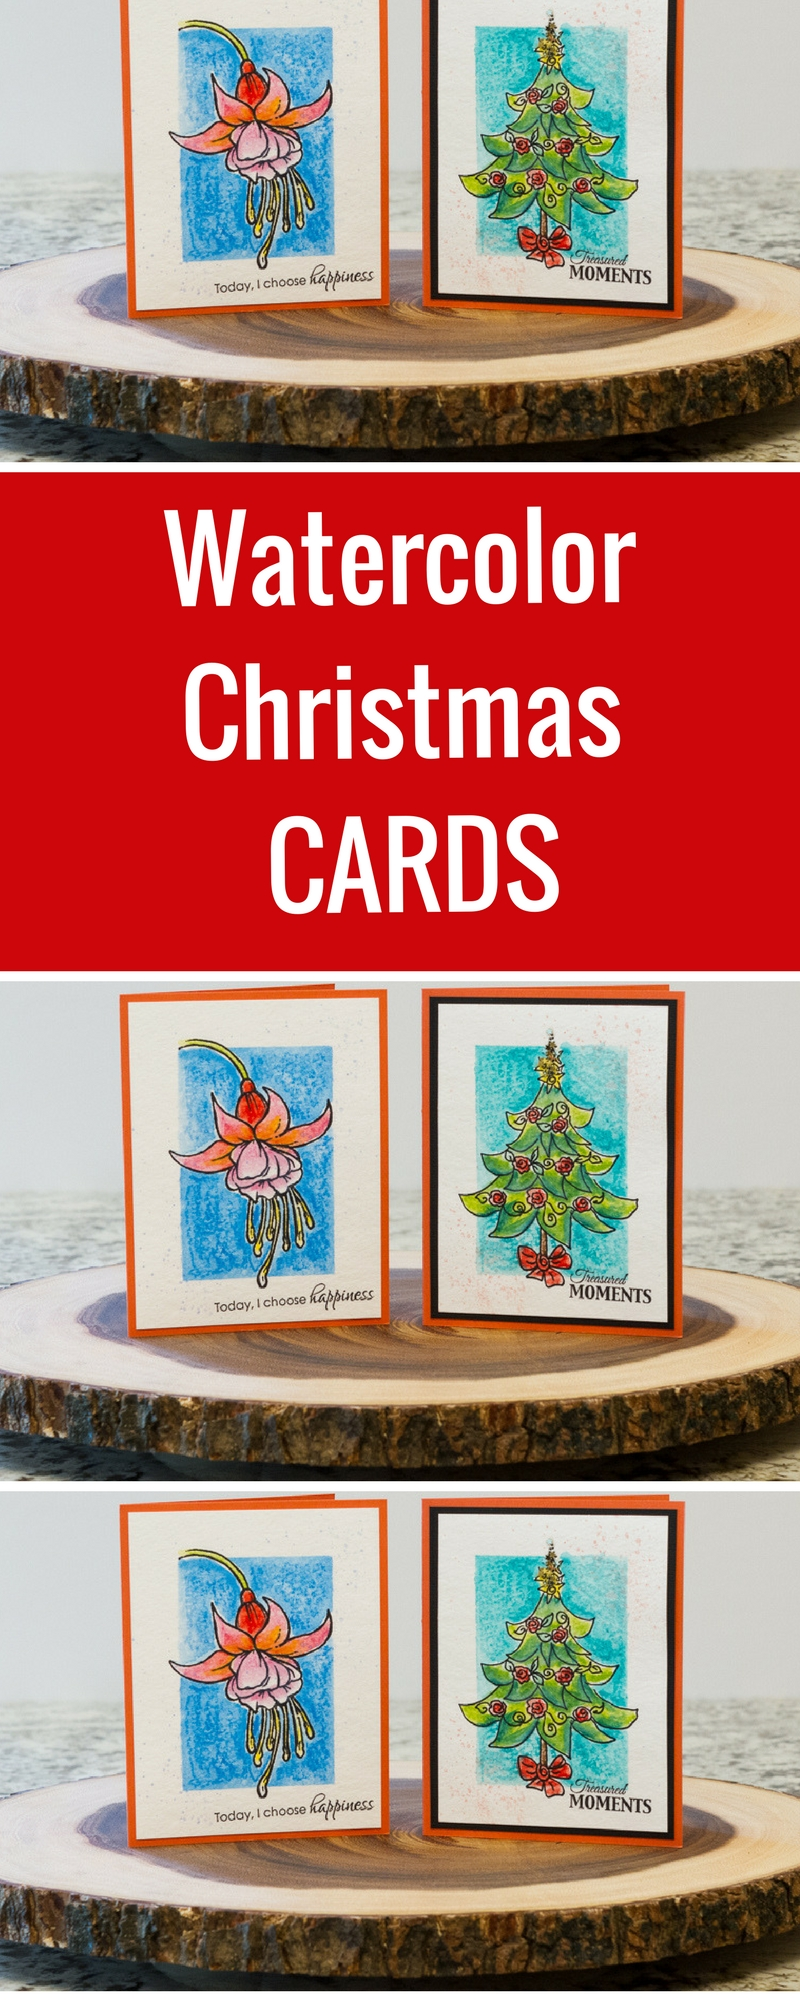 Card Making | Christmas Cards | Scrapbooking | Featuring Stabilo Woody 3-IN-1 | Designed by Kim Gowdy | Creative Scrapbooker Magazine